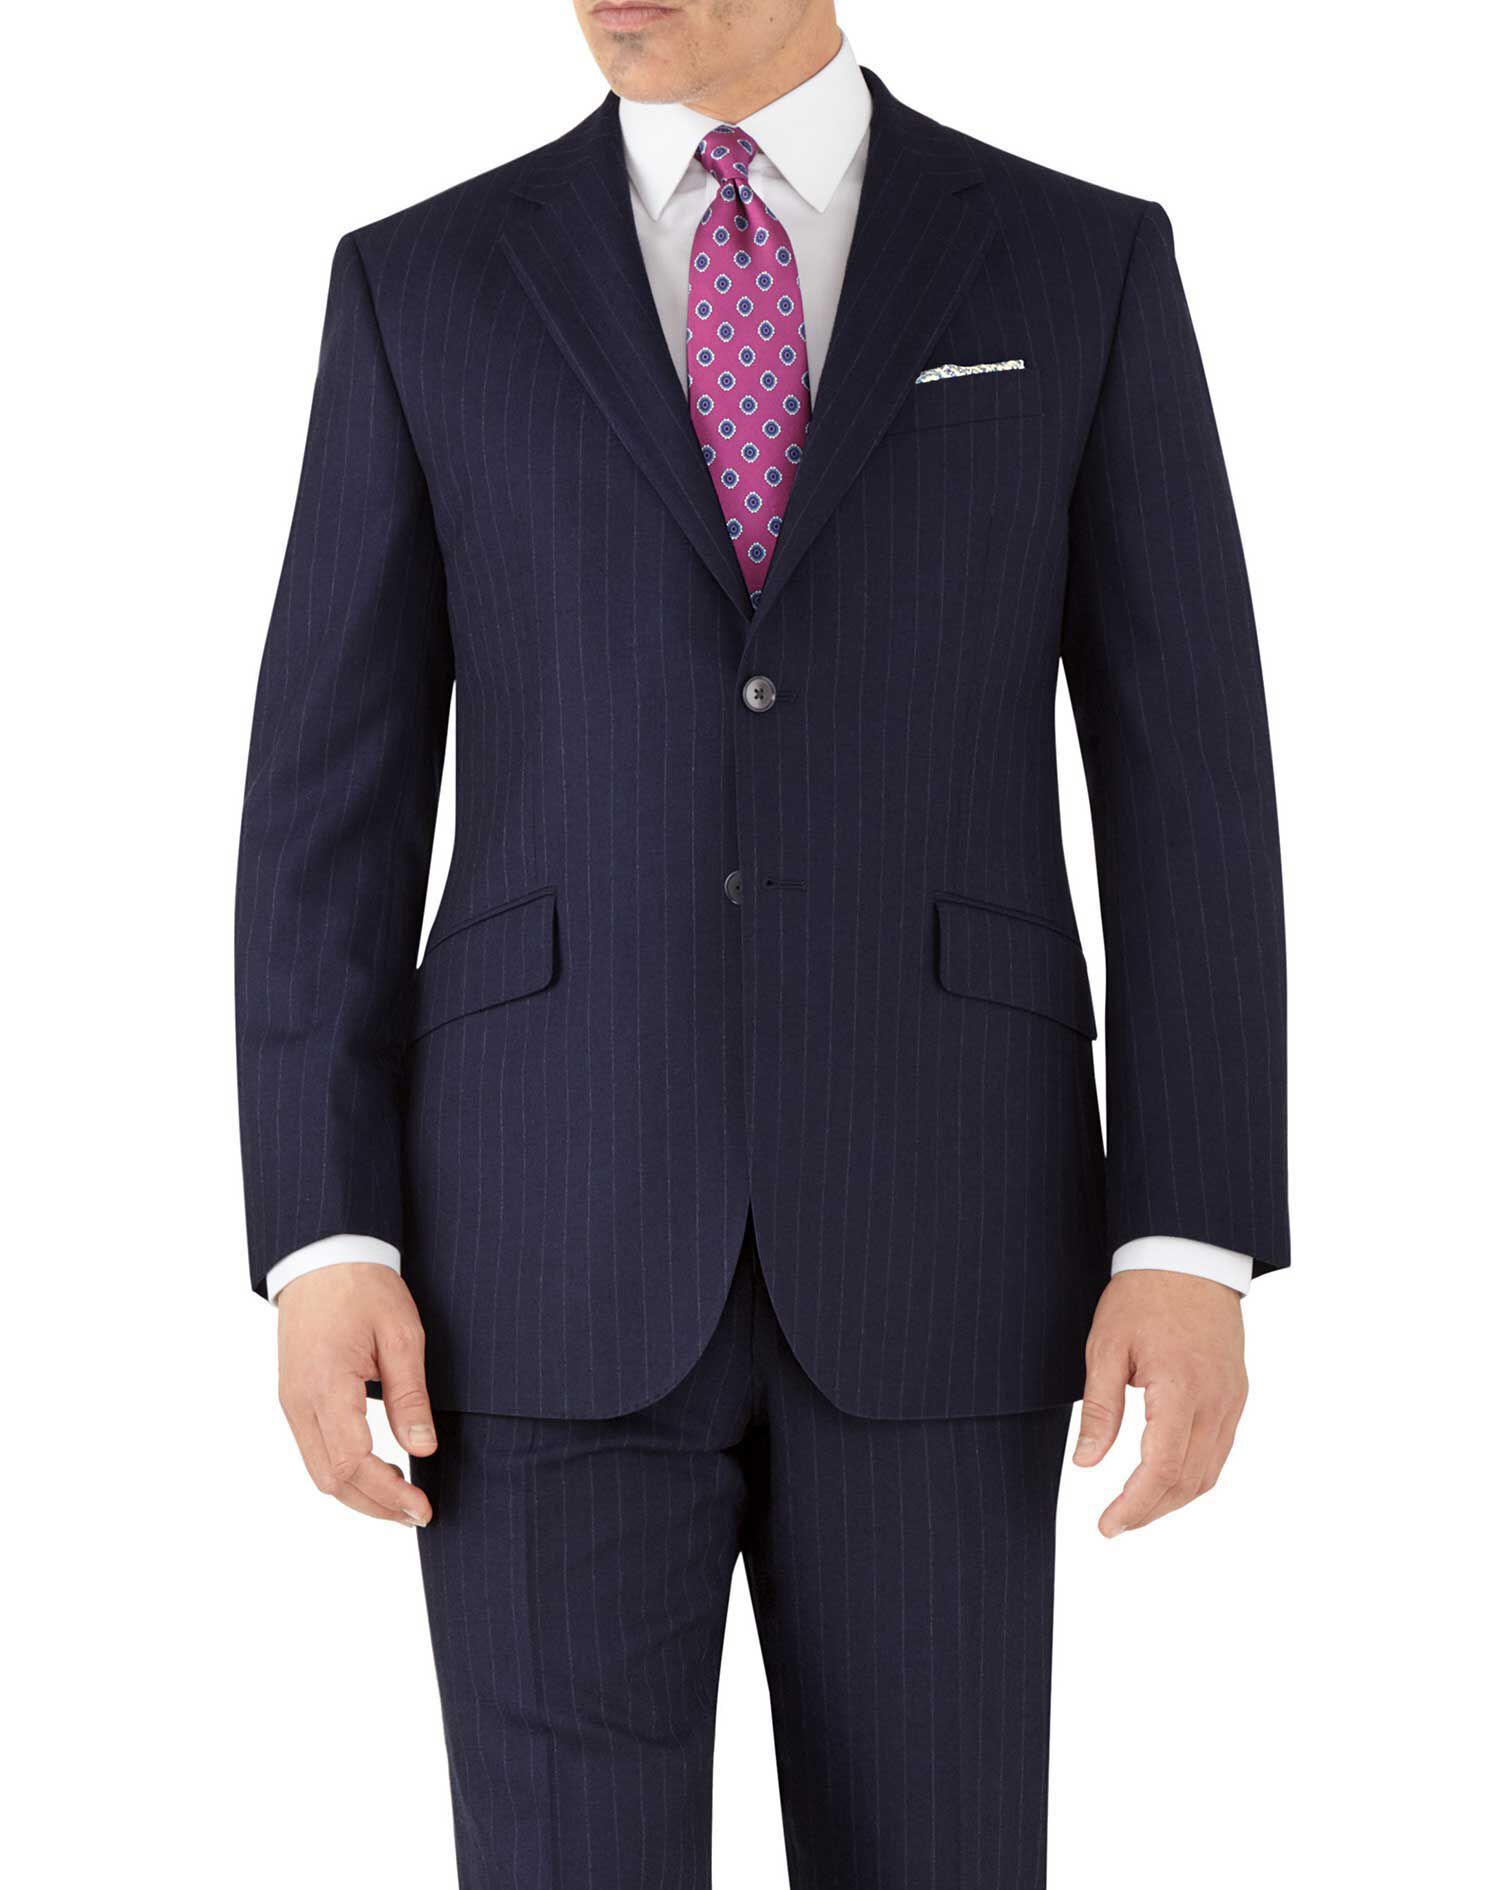 Navy Stripe Classic Fit Flannel Business Suit Wool Jacket Size 46 Regular by Charles Tyrwhitt